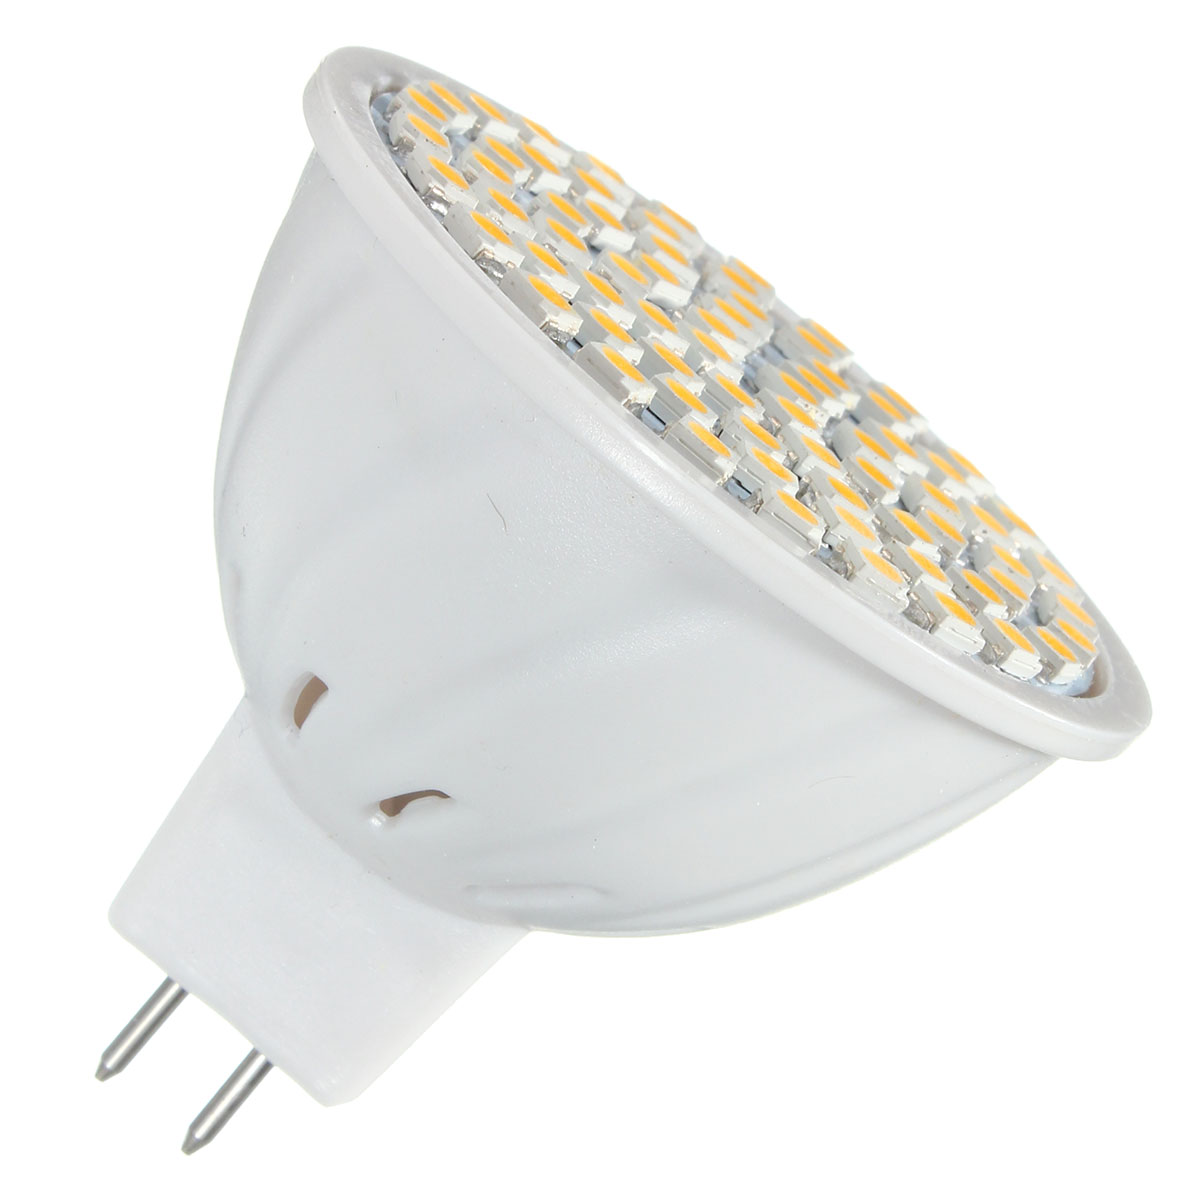 E14 E27 GU10 MR16 3.5W 72 SMD 3528 Pure White Warm White LED Spot Lightt Bulbs Lamps AC110V AC220V